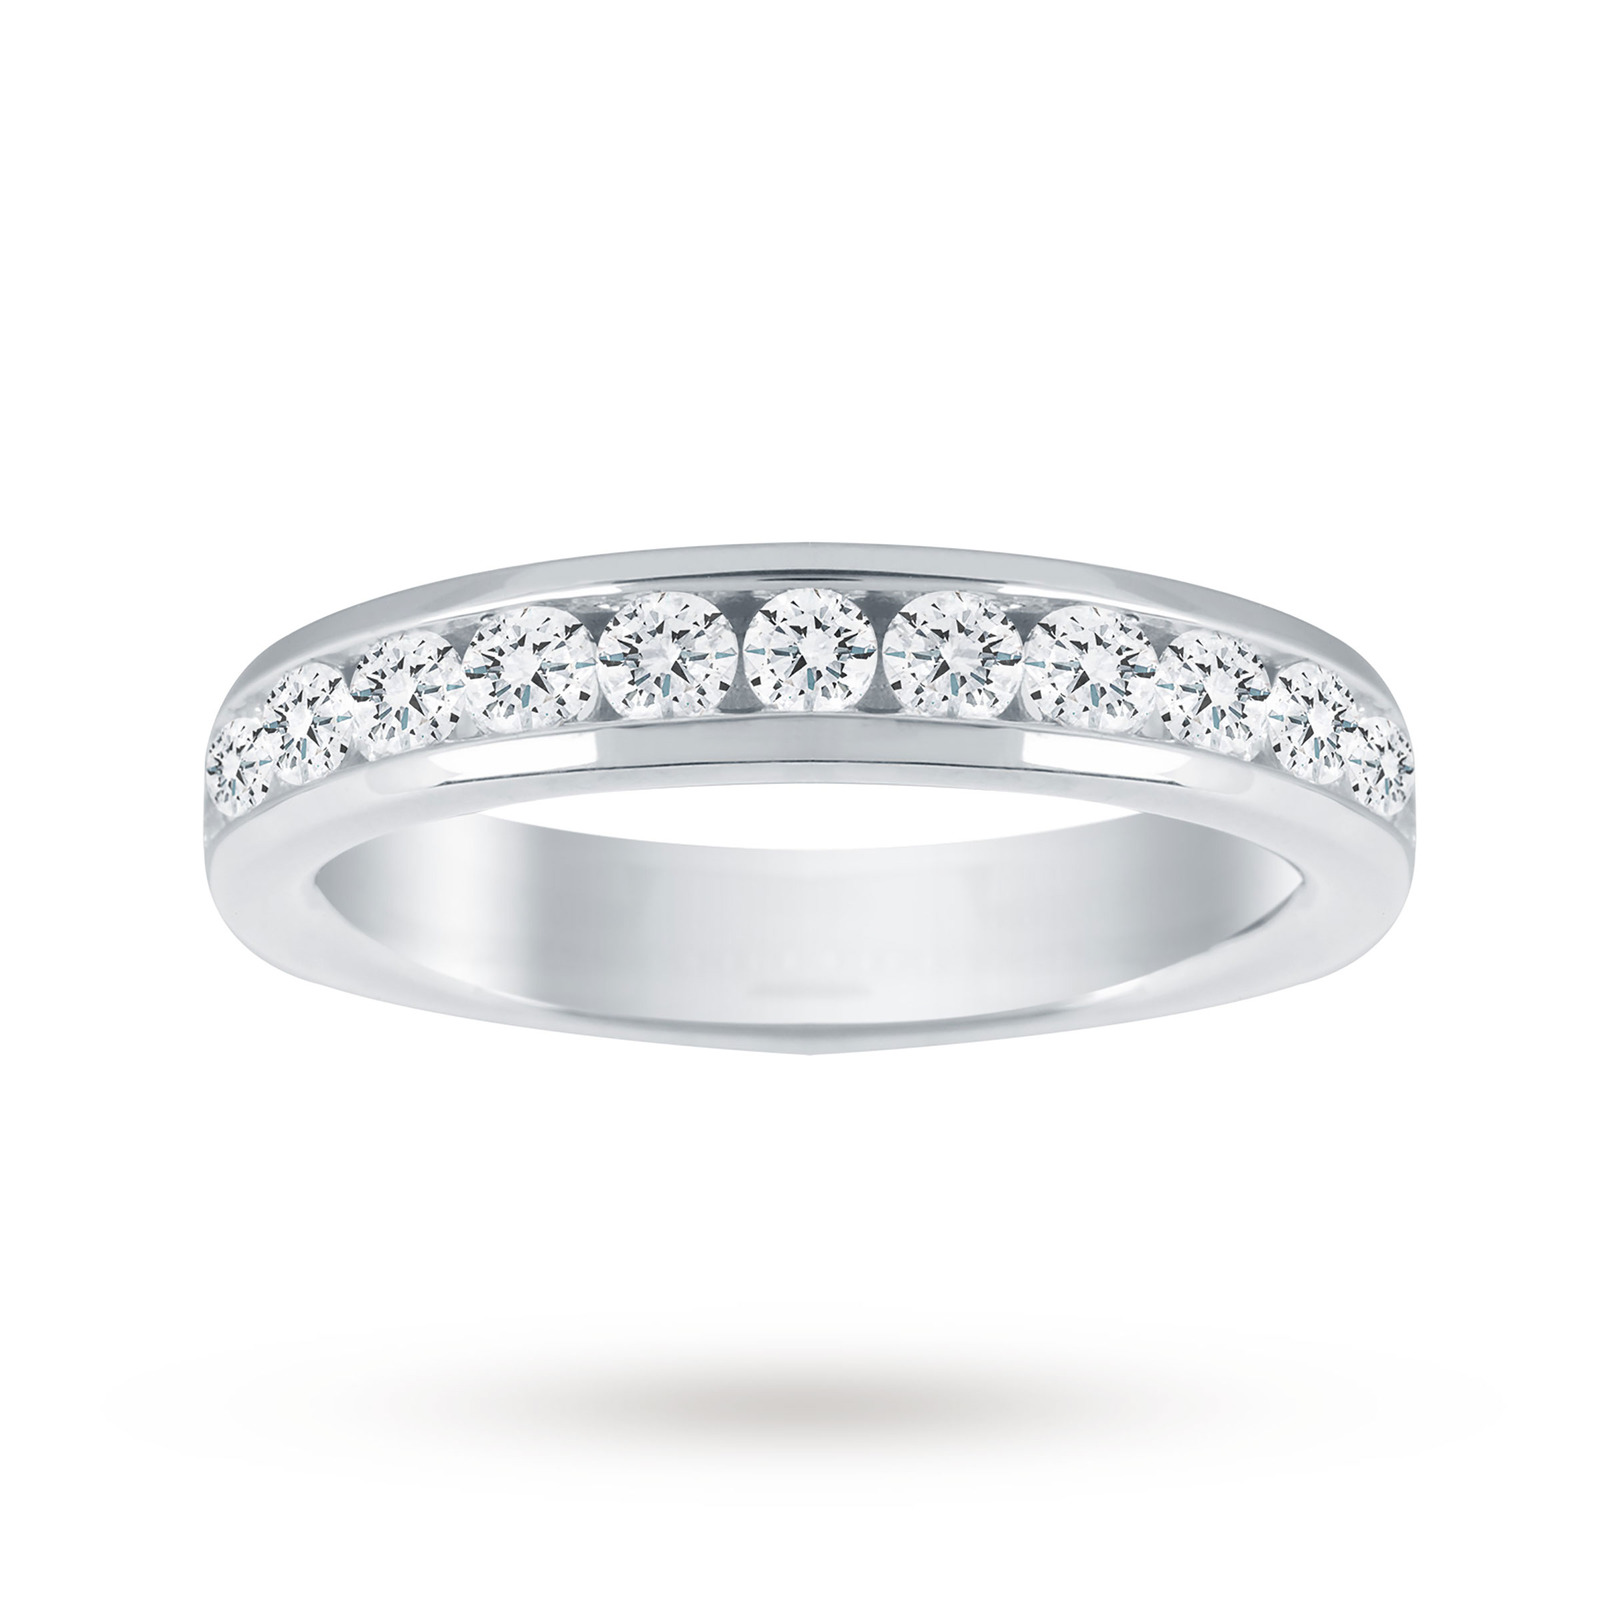 18ct White Gold 1.00cttw Diamond Eternity Ring